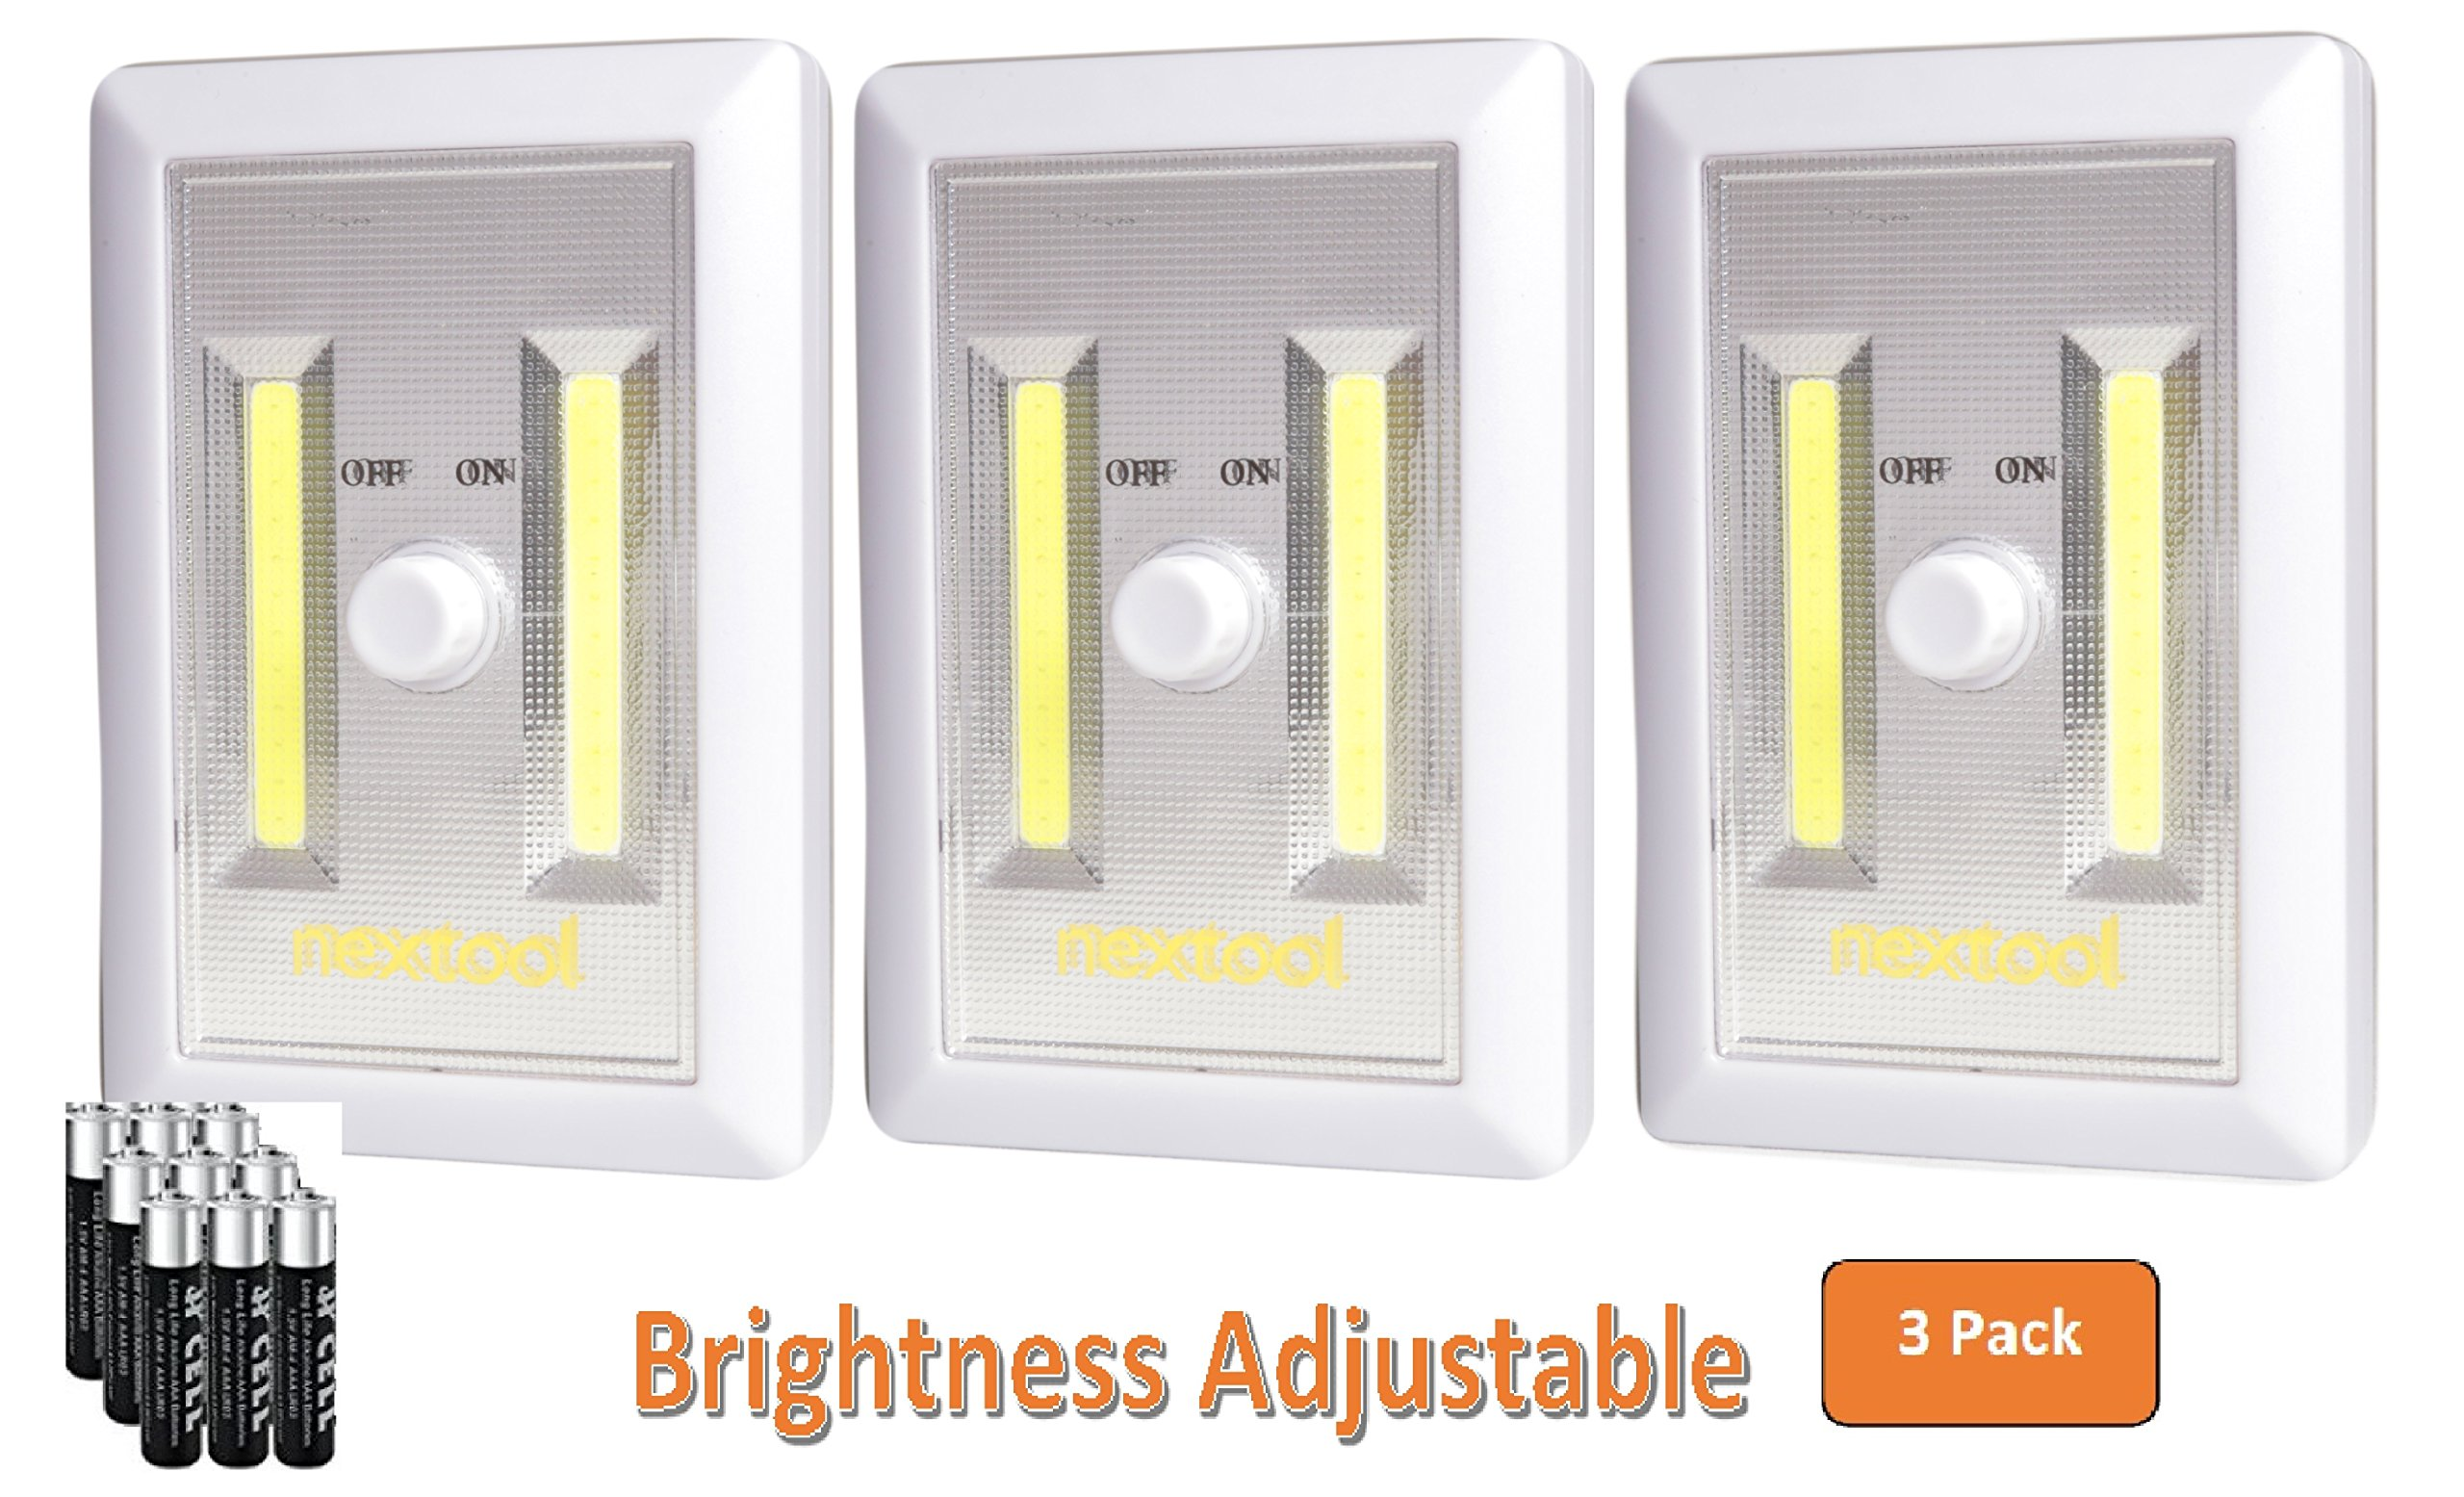 [New Arrival] 3-Pack Adjustable Brightness, Dimmable Battery Included COB LED Cordelss Switch Light, Tap Light, Battery Operated LED Night Lights, Batteries & Adhesive Strips (Included), White